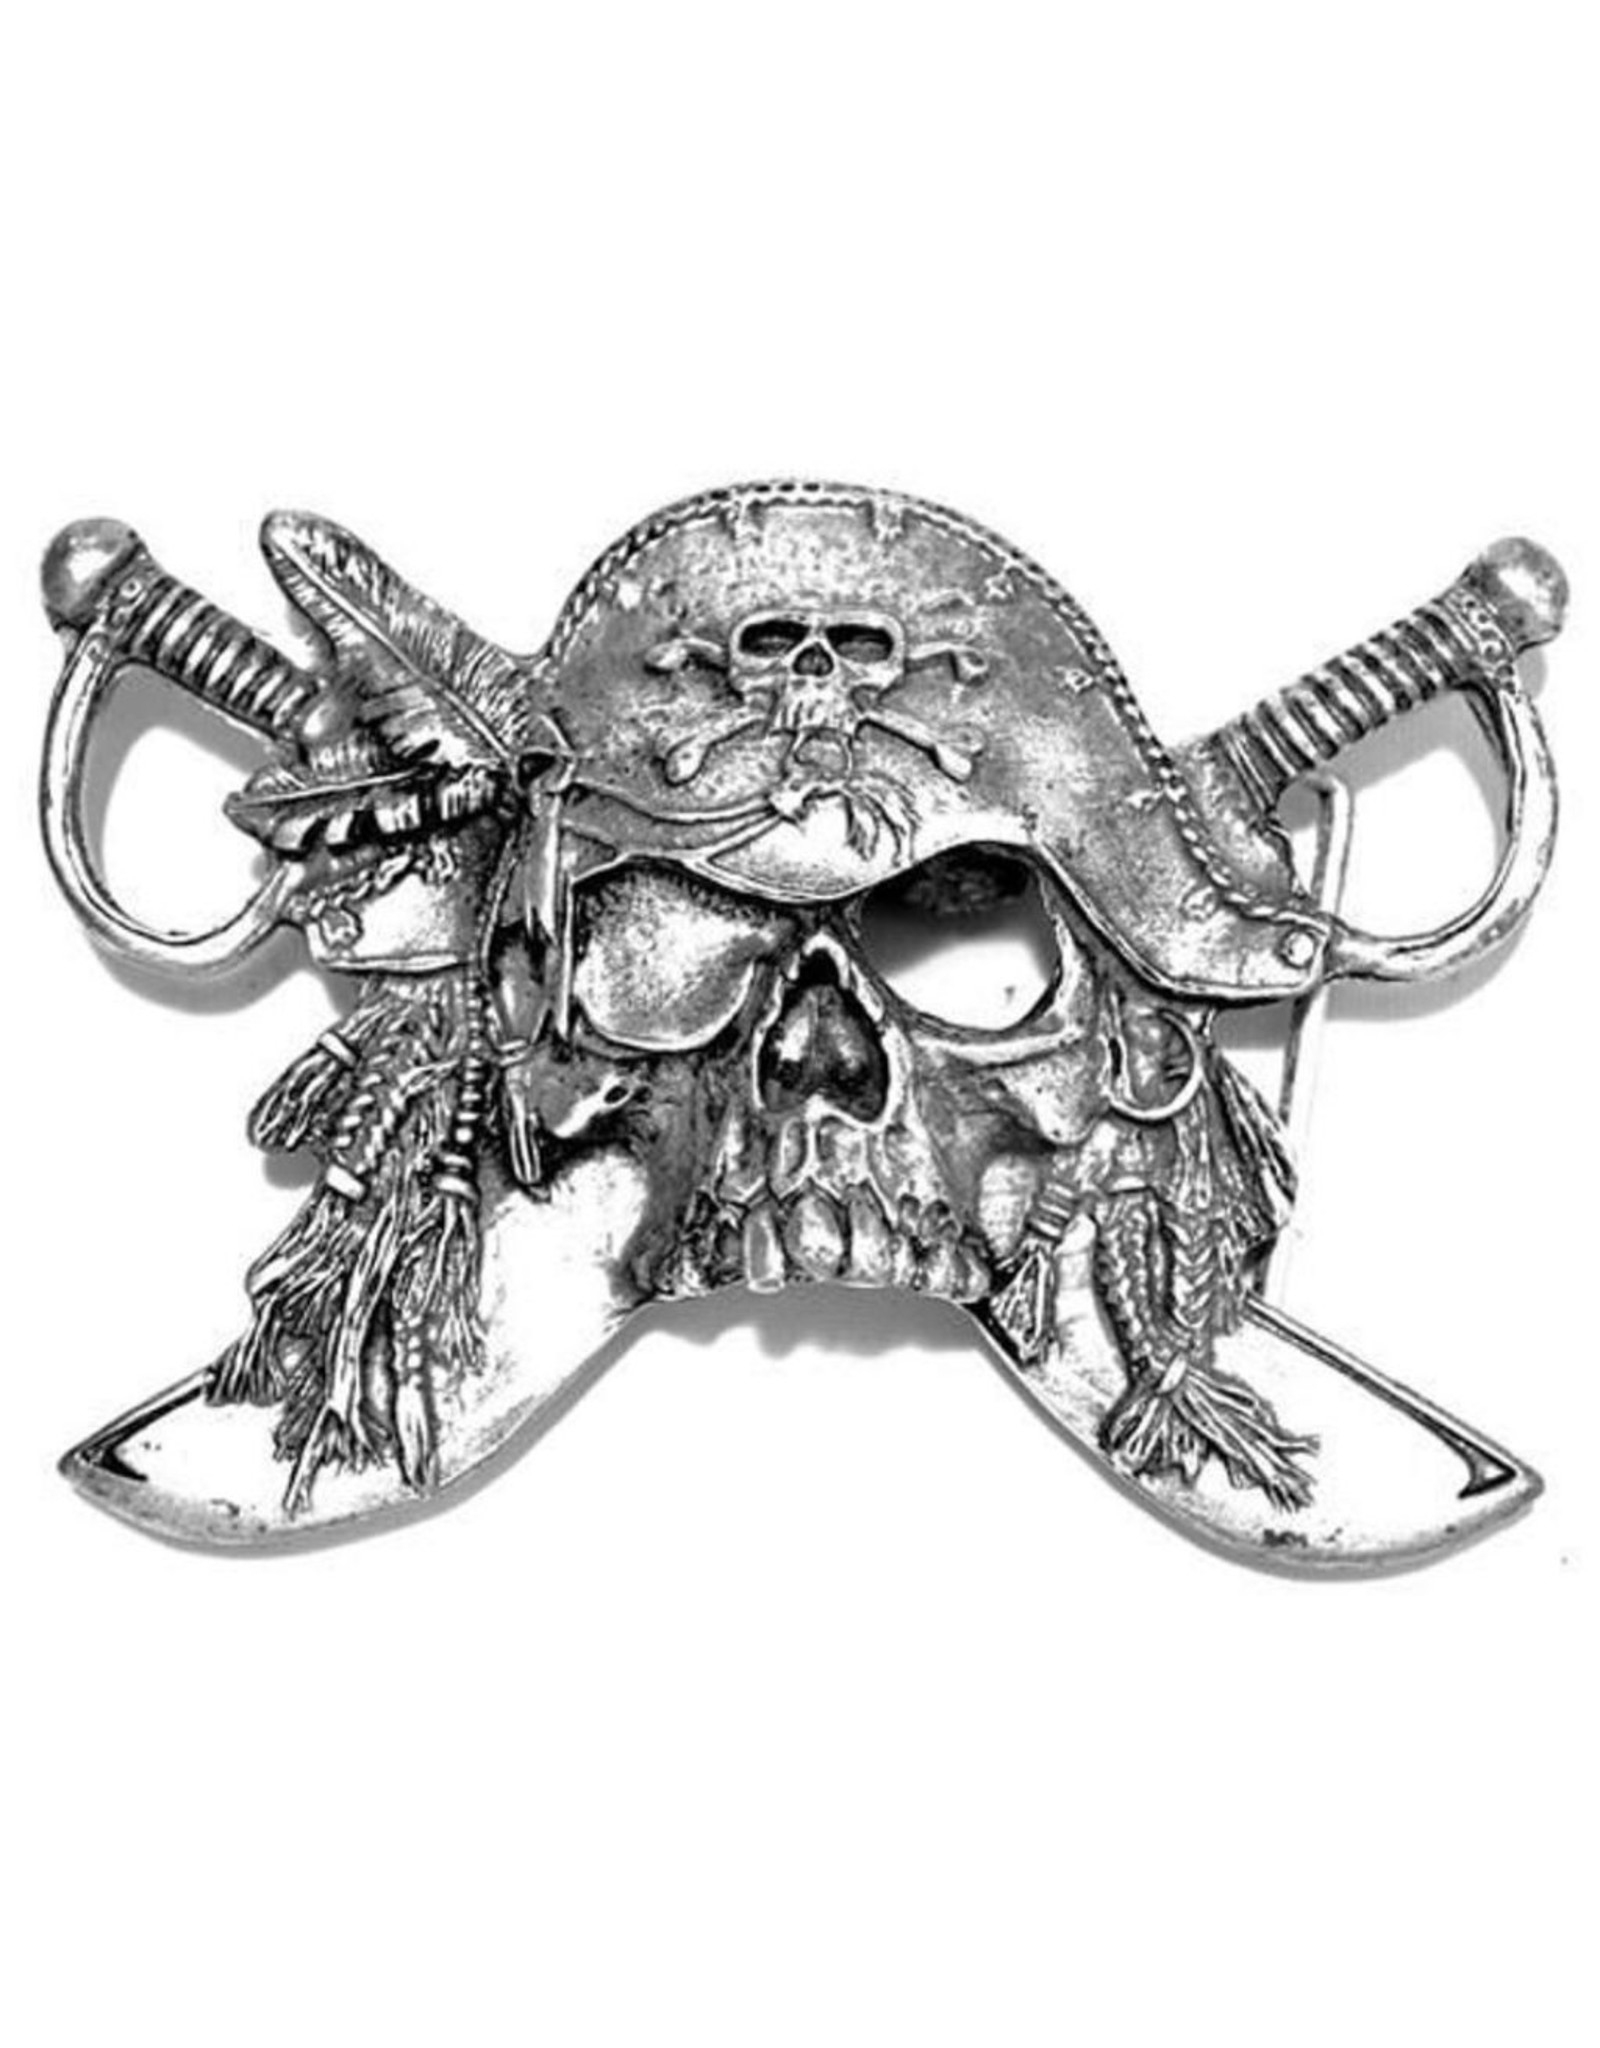 """Acco Leather belts and buckles - Buckle """"Pirates Sword"""""""